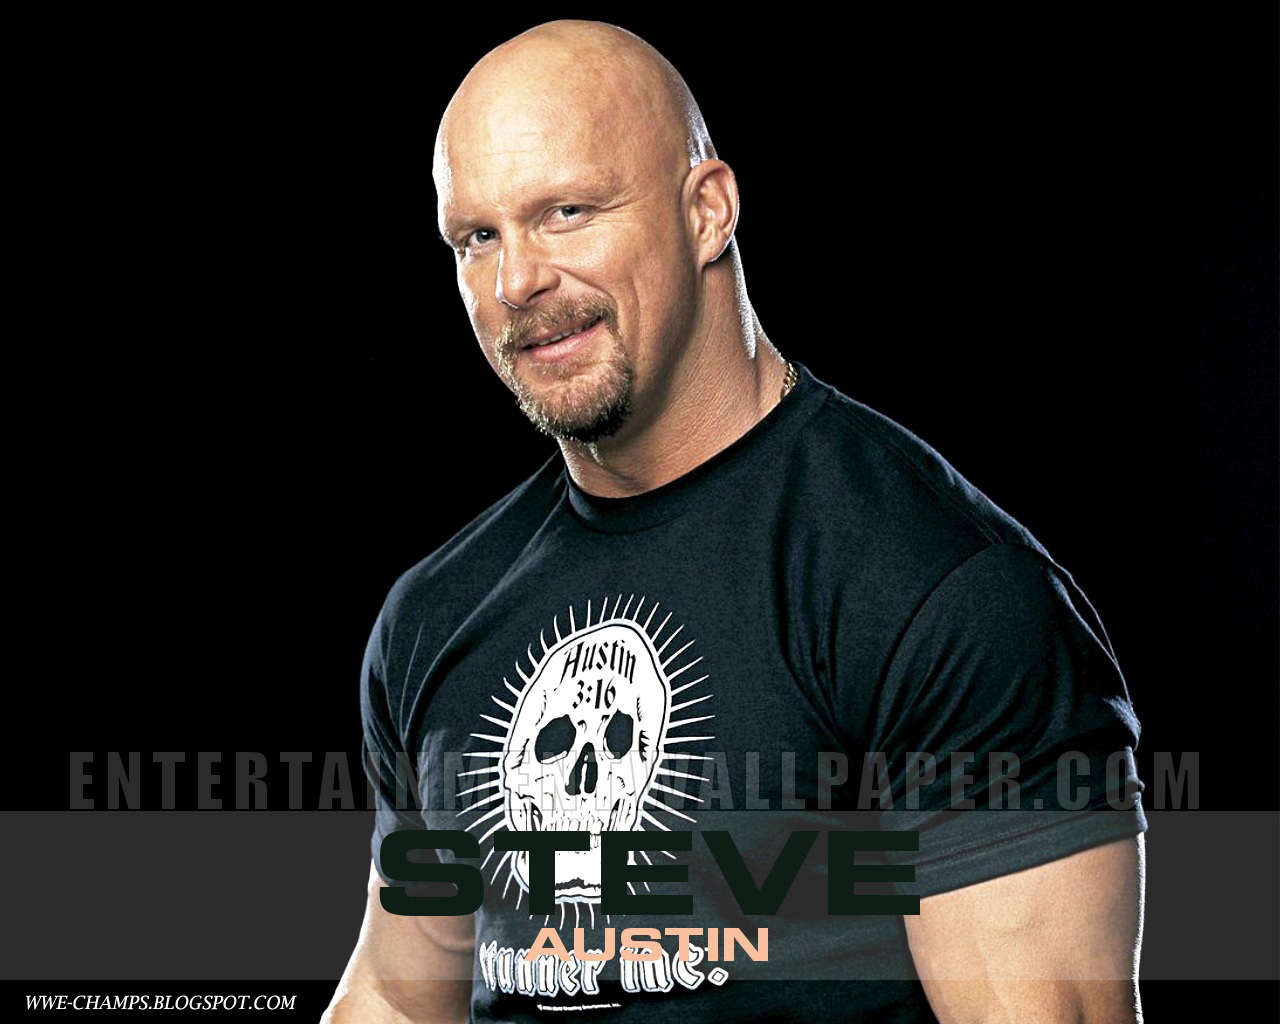 The Undertaker Hd Wallpaper Wwe Champs Stone Cold Steve Austin What